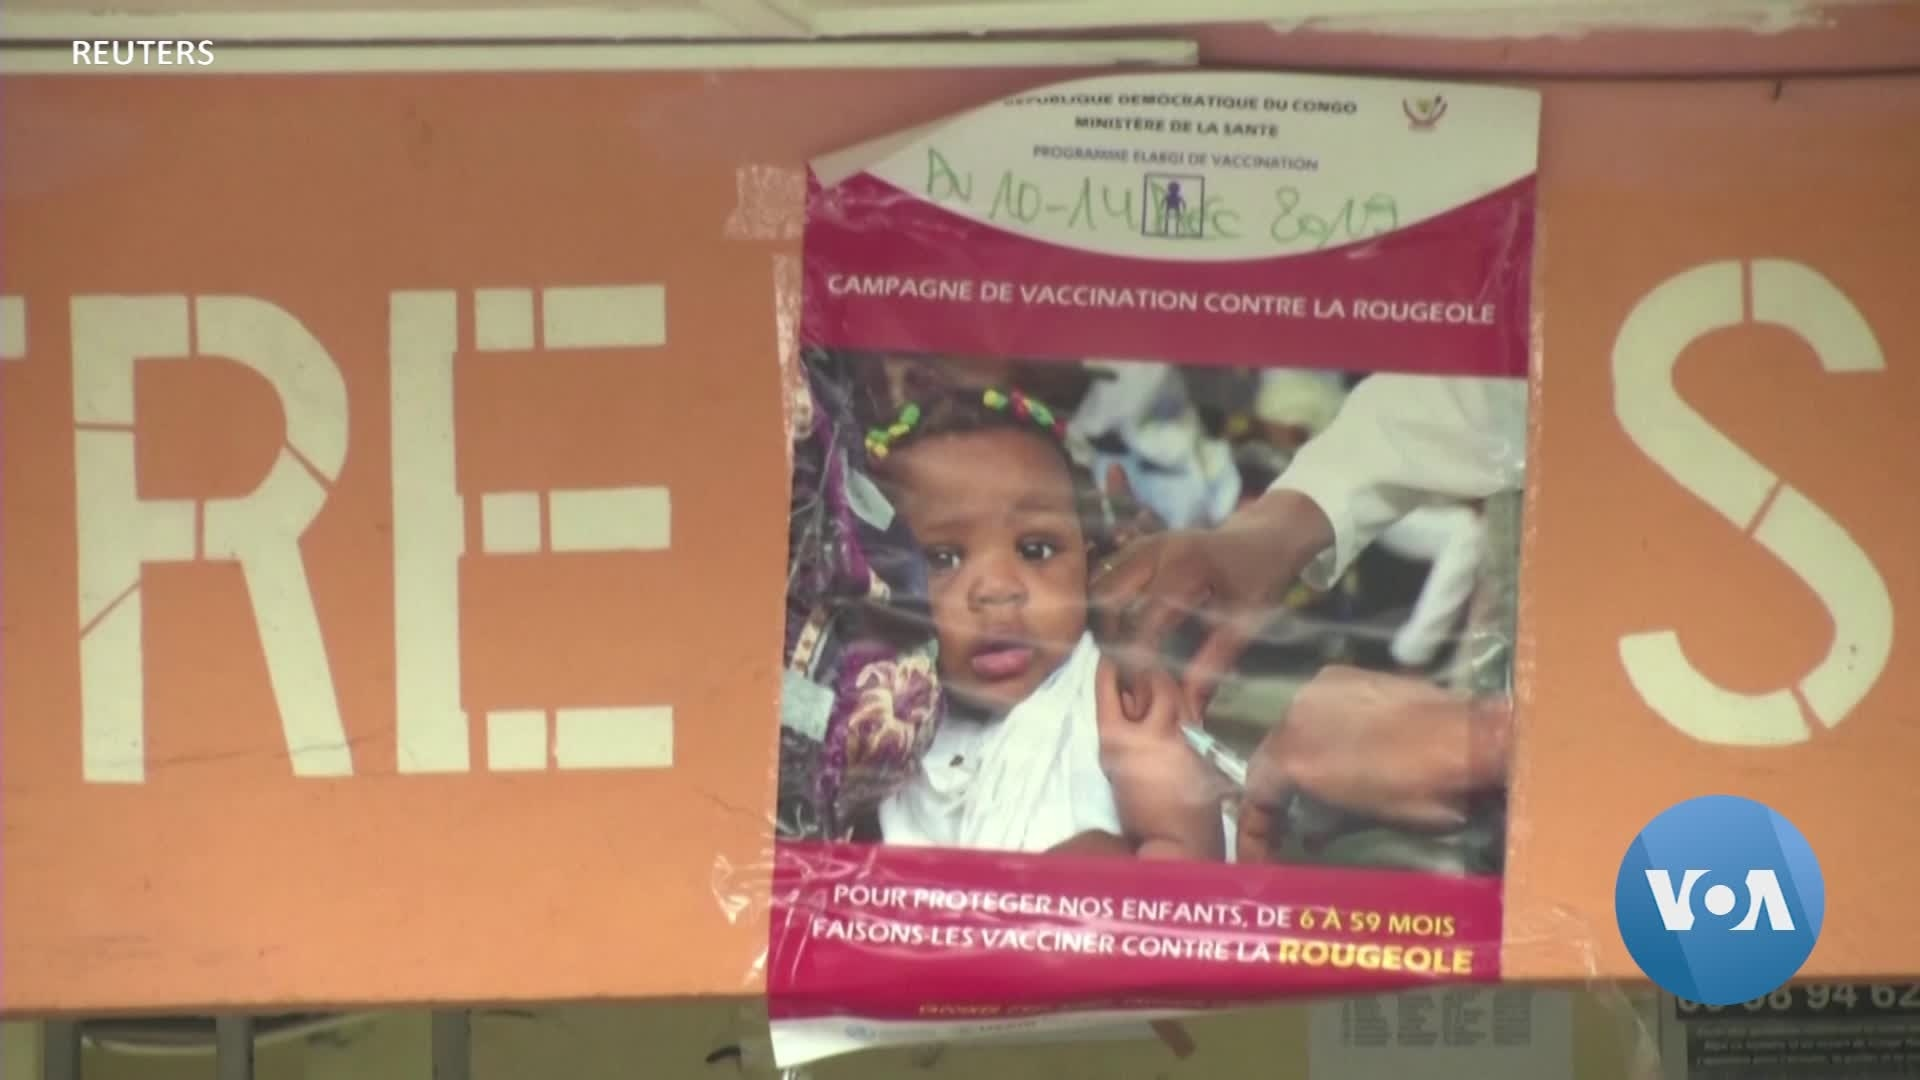 DRC, WHO Roll Out Measles Immunization Campaign Amid Unrest